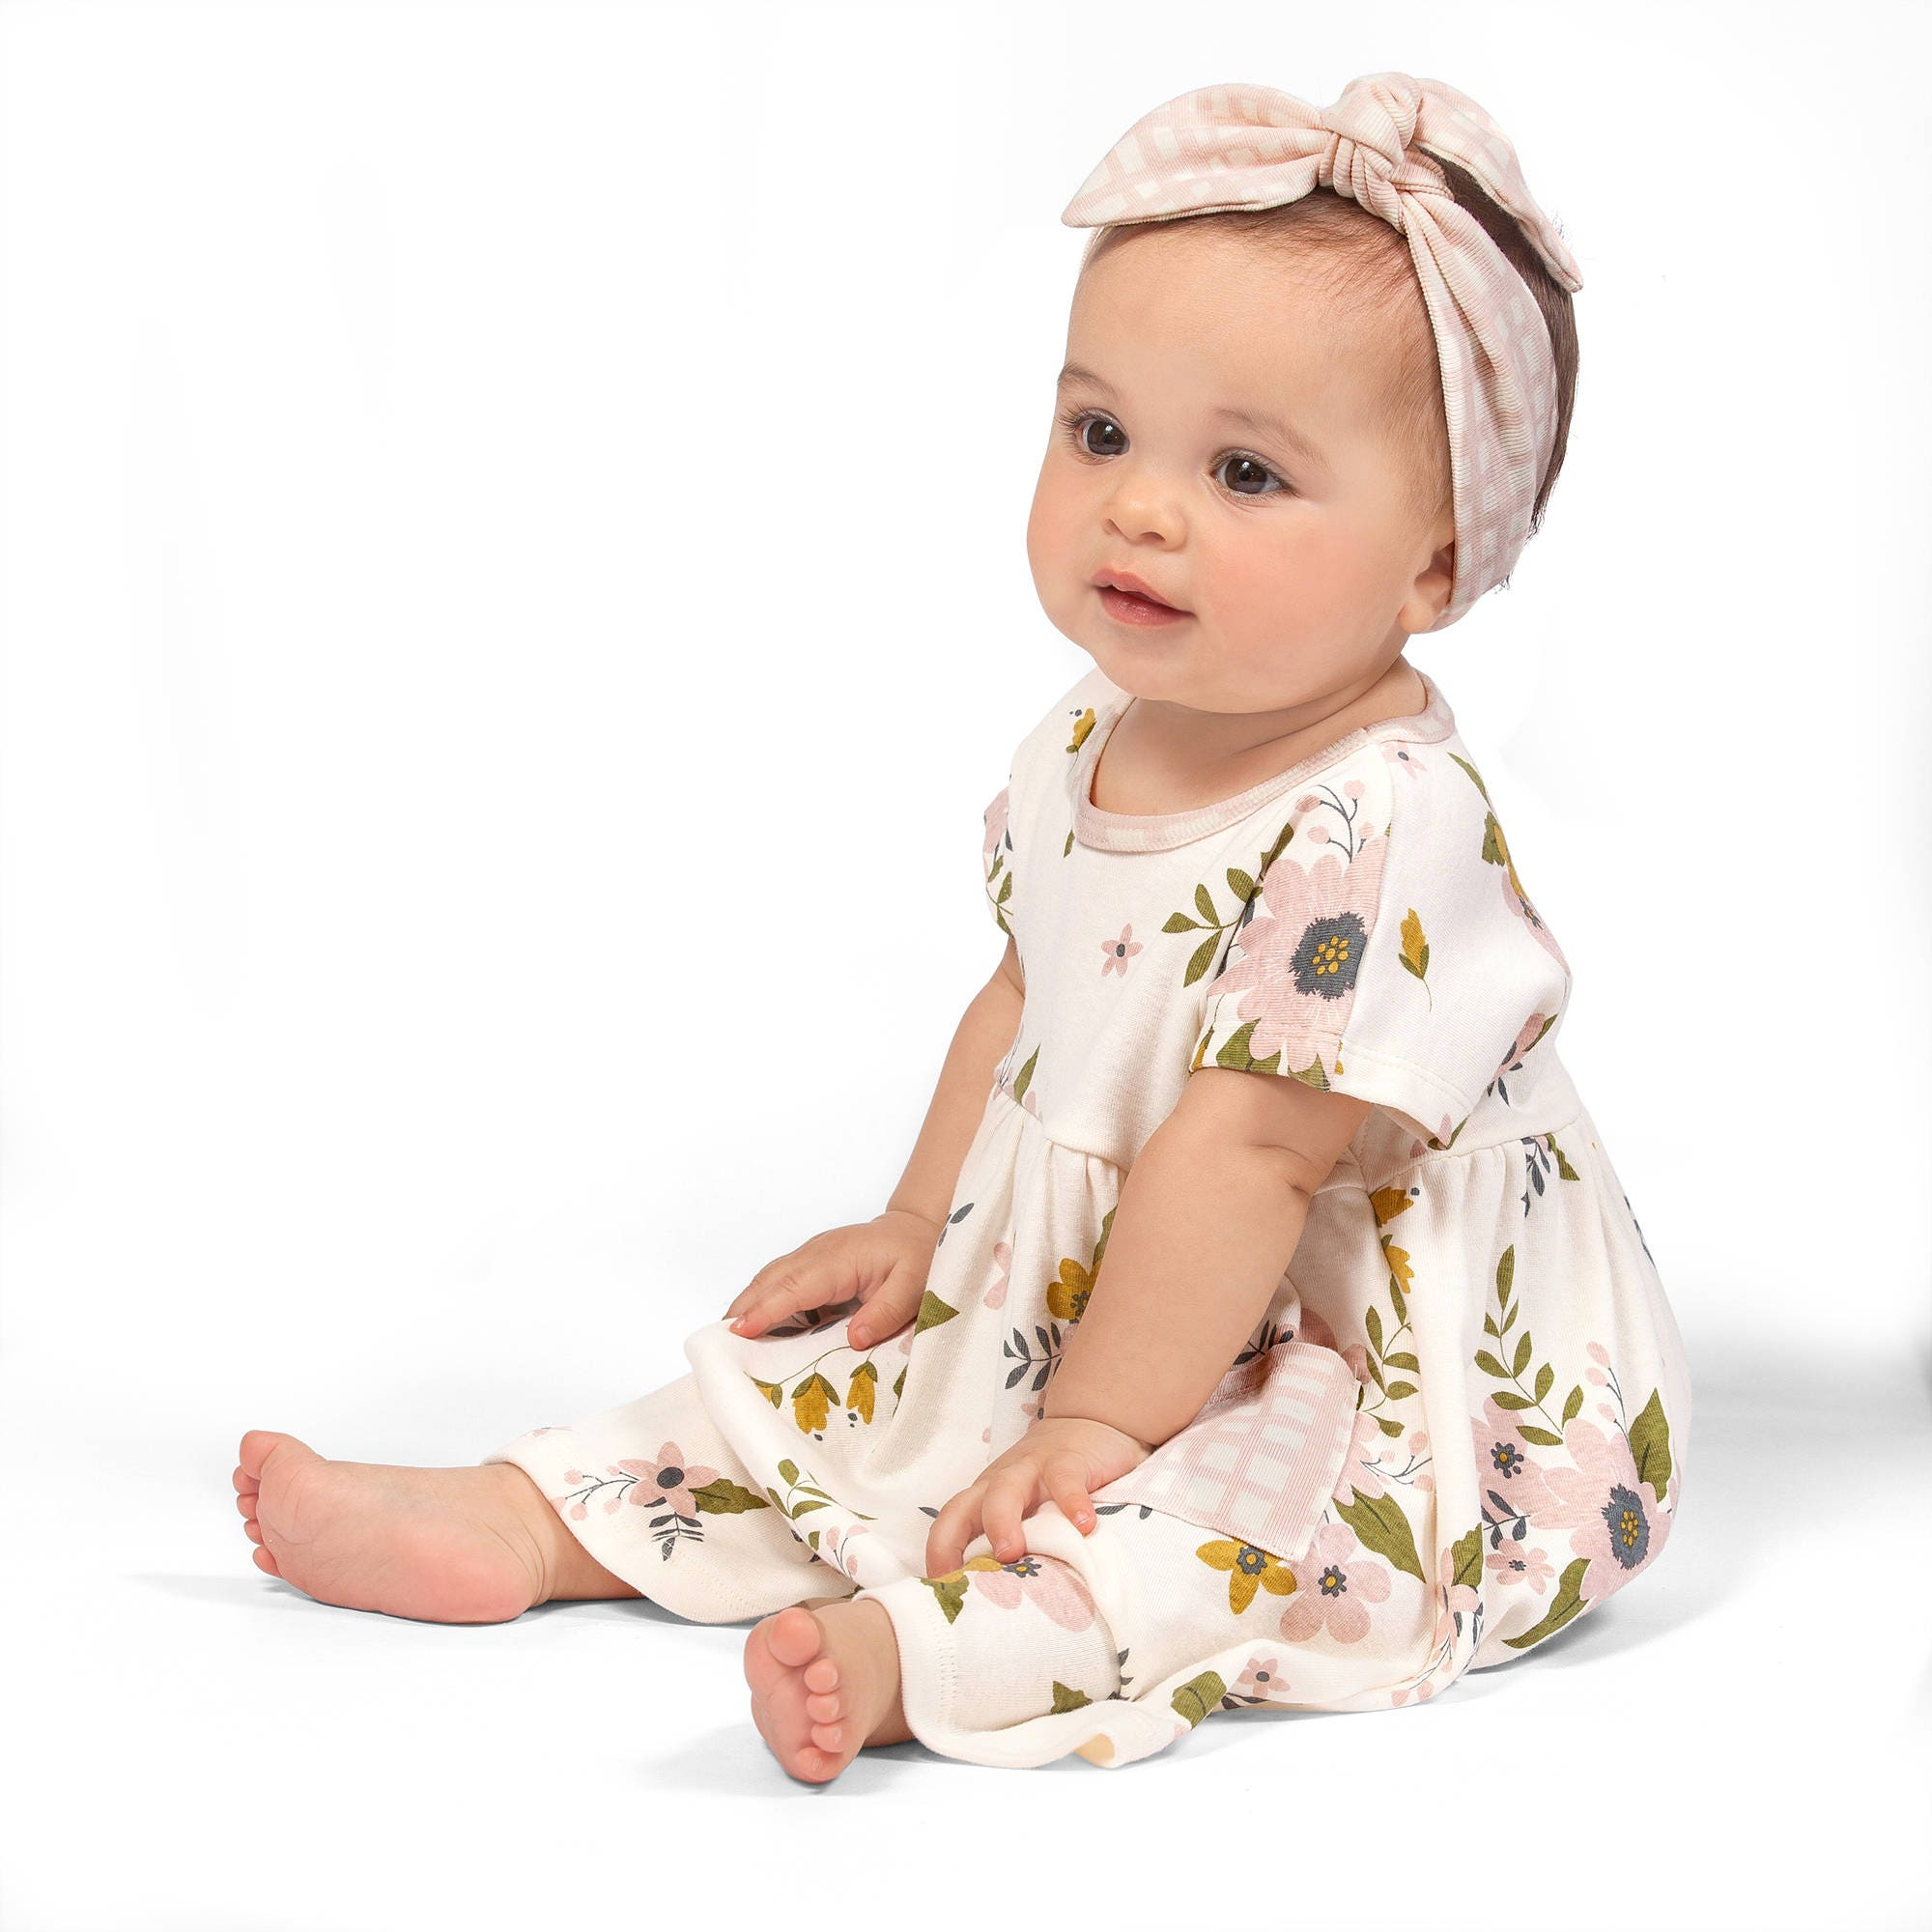 e34a983cd SALE! Baby Girl Floral Dress